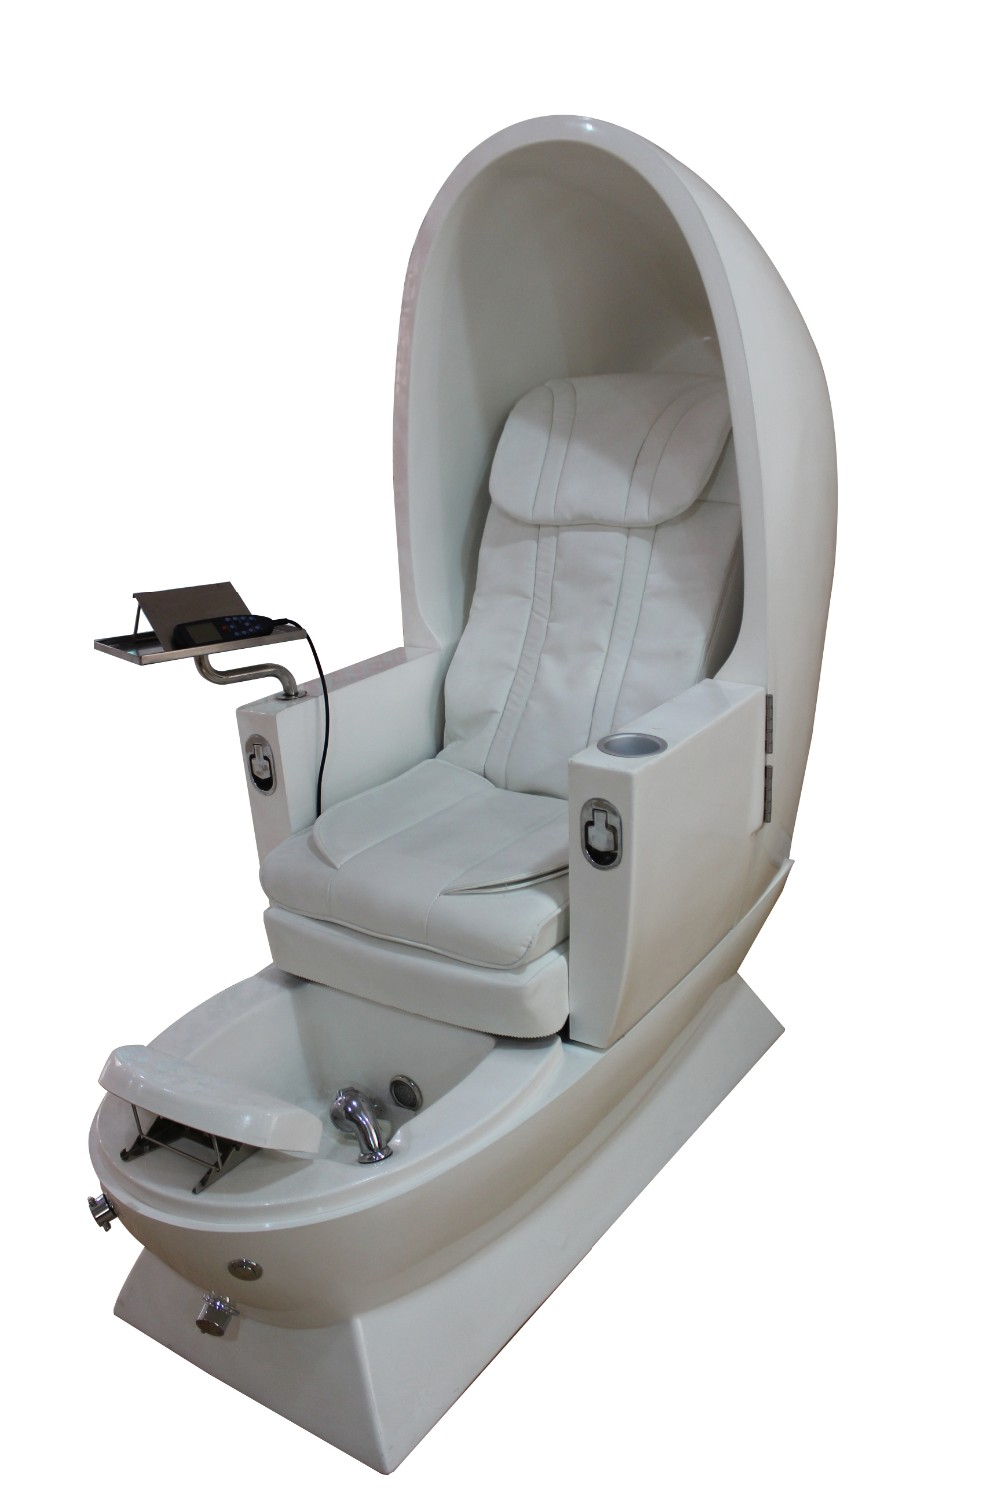 used spa pedicure chair for sale - buy spa pedicure chair,used